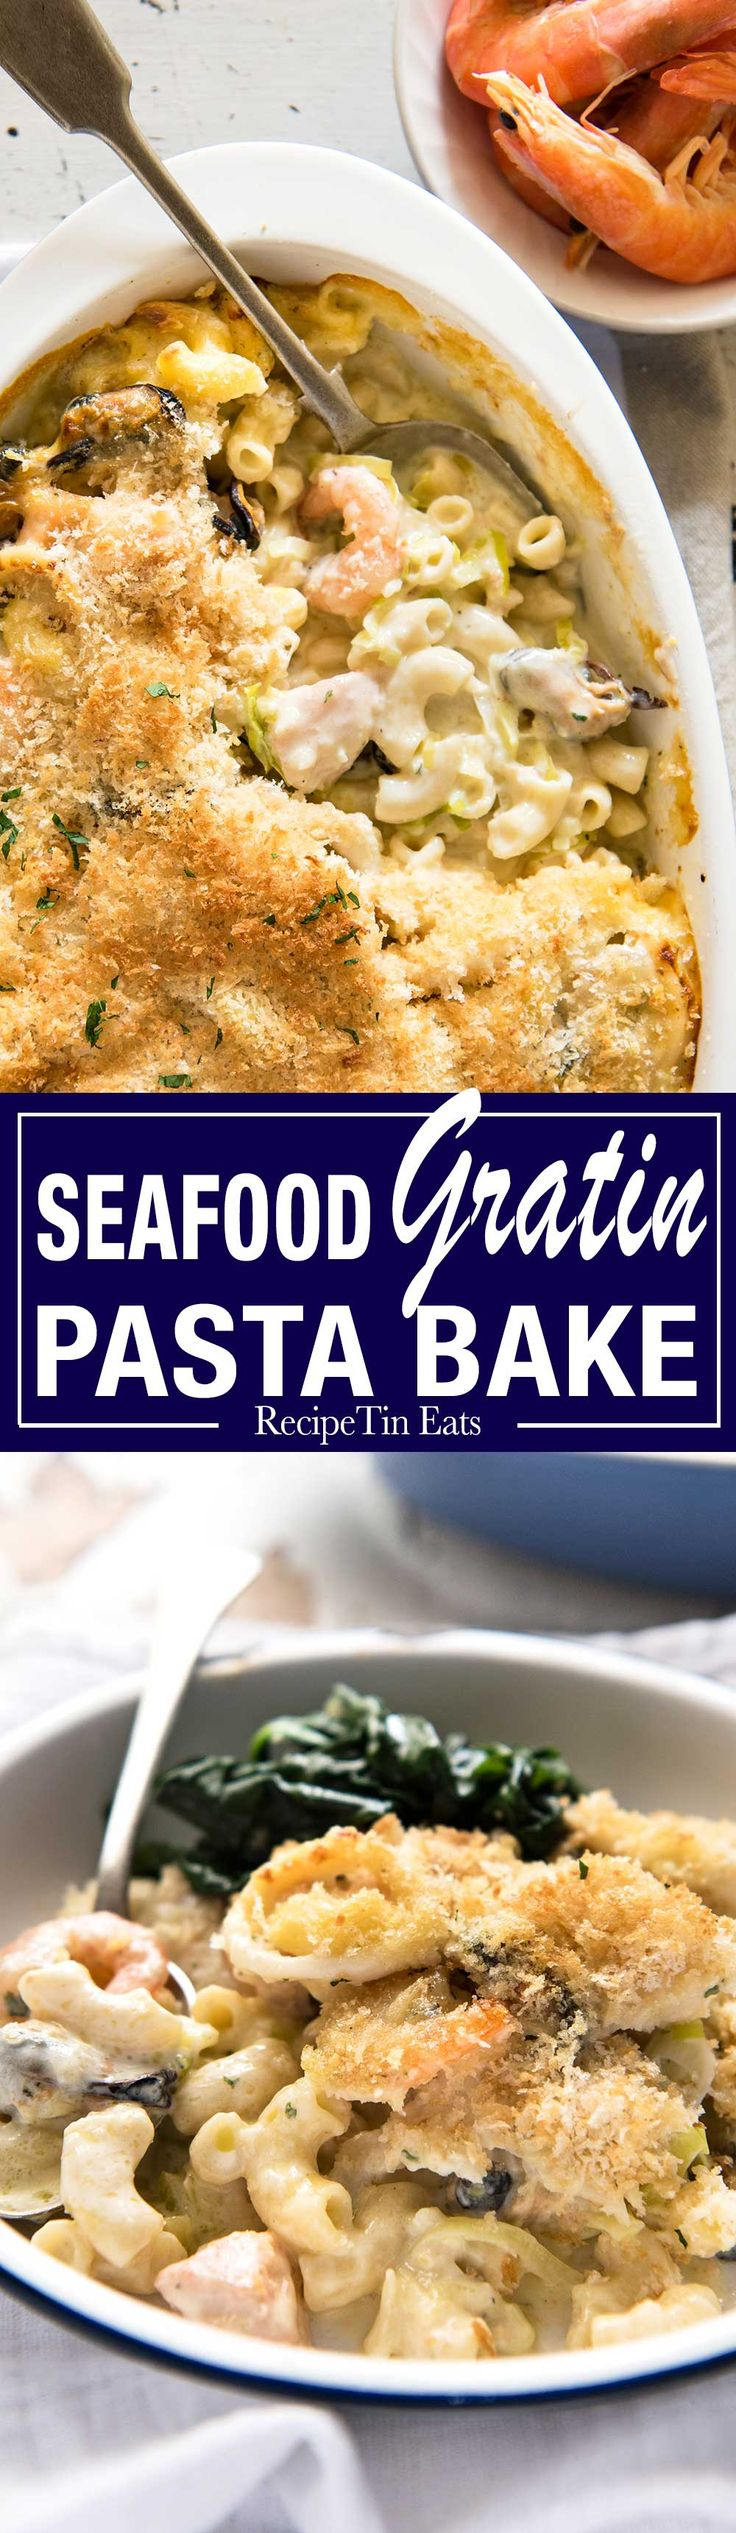 Seafood Gratin Pasta Bake - mixed seafood (your choice!) and pasta baked in a creamy sauce with a crunchy breadcrumb and cheese…